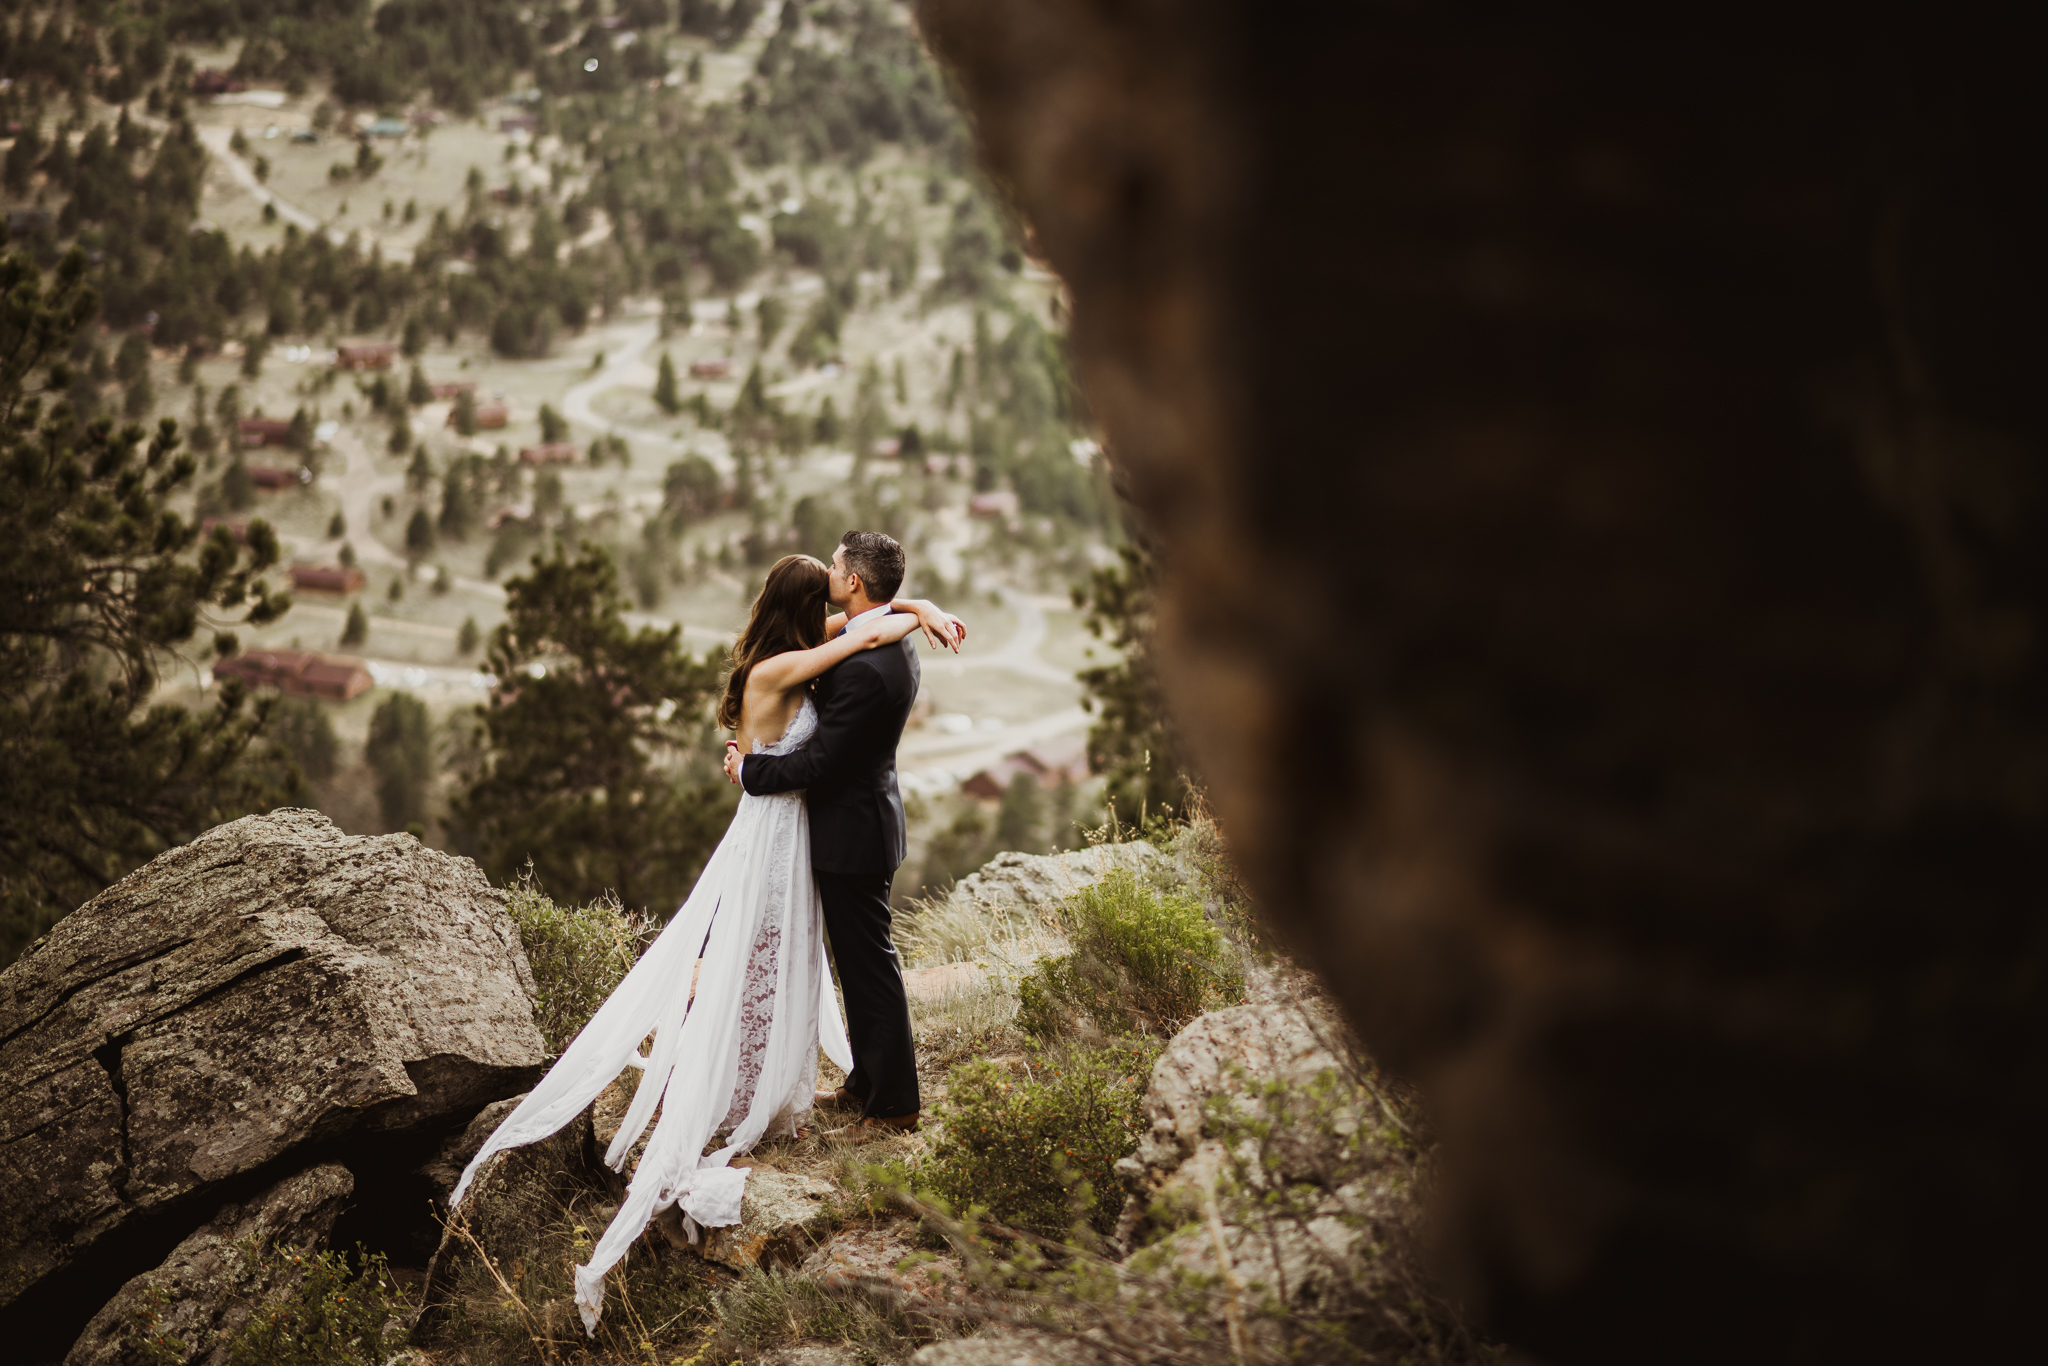 ©Isaiah + Taylor Photography - Estes National Park Adventure Elopement, Colorado Rockies-120.jpg